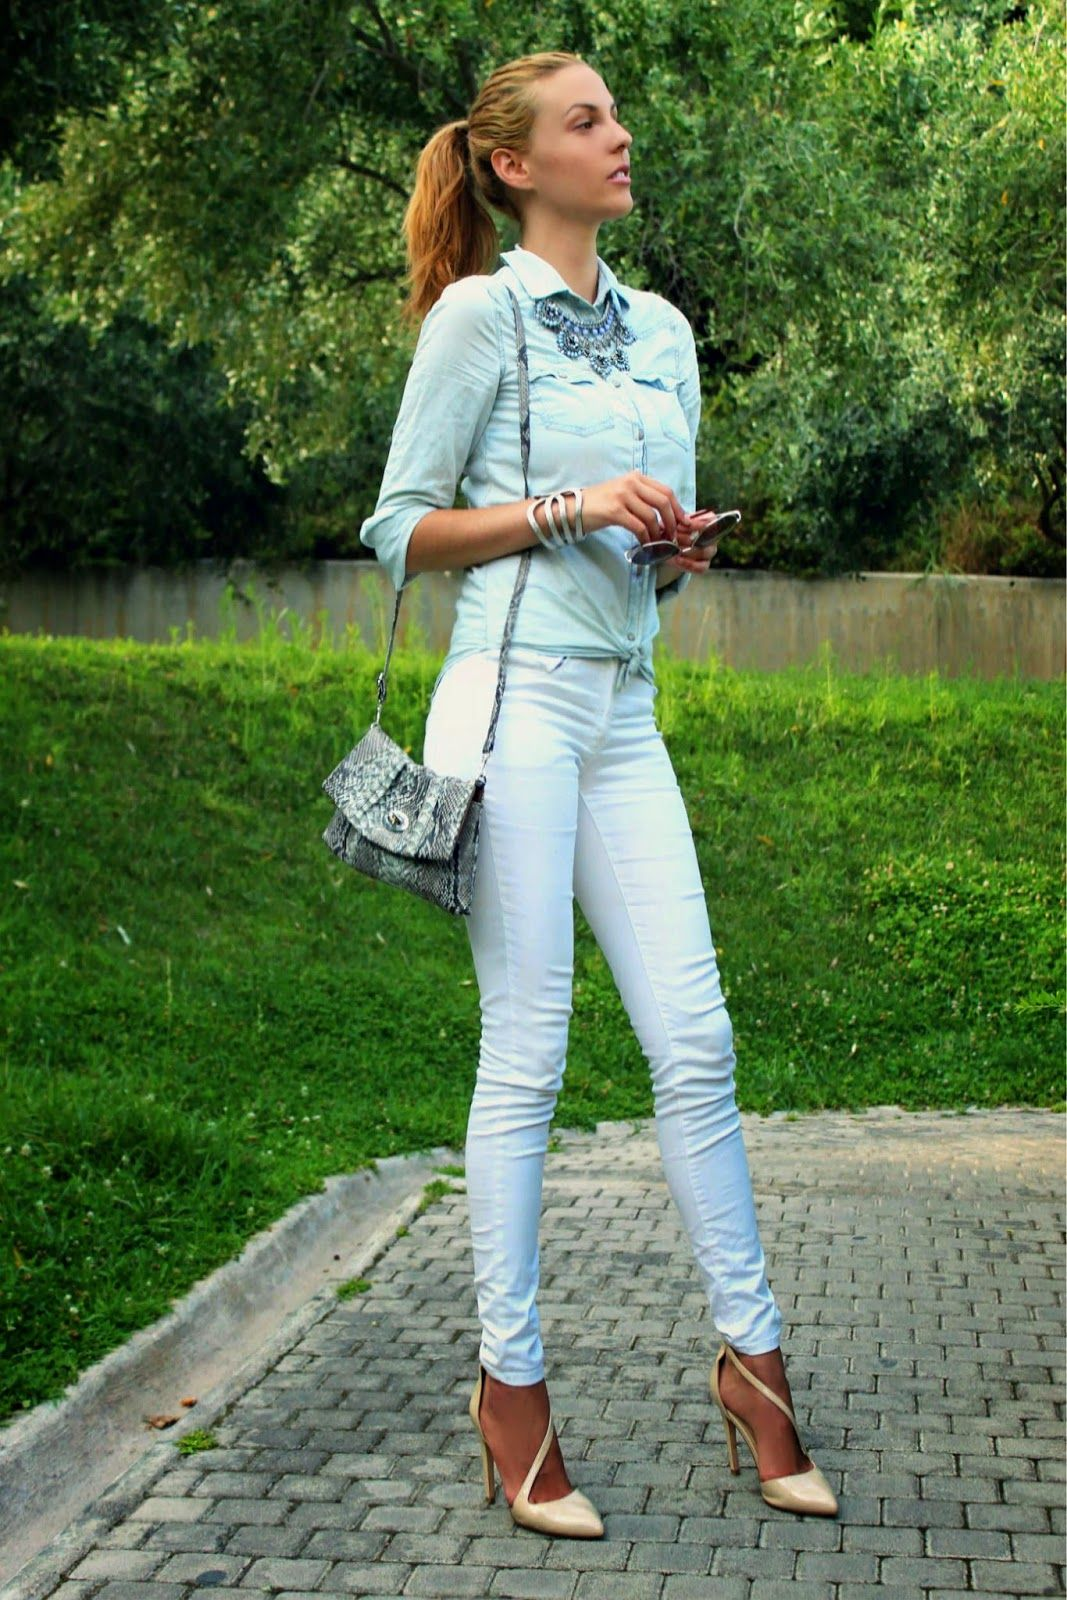 Original Business Casual Work Outfit Grey Blazer, Stripes, Trouser Jeans, Pop Of Color In Scarf &amp Bag Casual Wear At Its More City Chic A Nice Jean With A Knit Top Or Even Tshirt, Blazer, And A Nice Pop Of Color In A Scarf The Mix Of Subtle Patterns Is